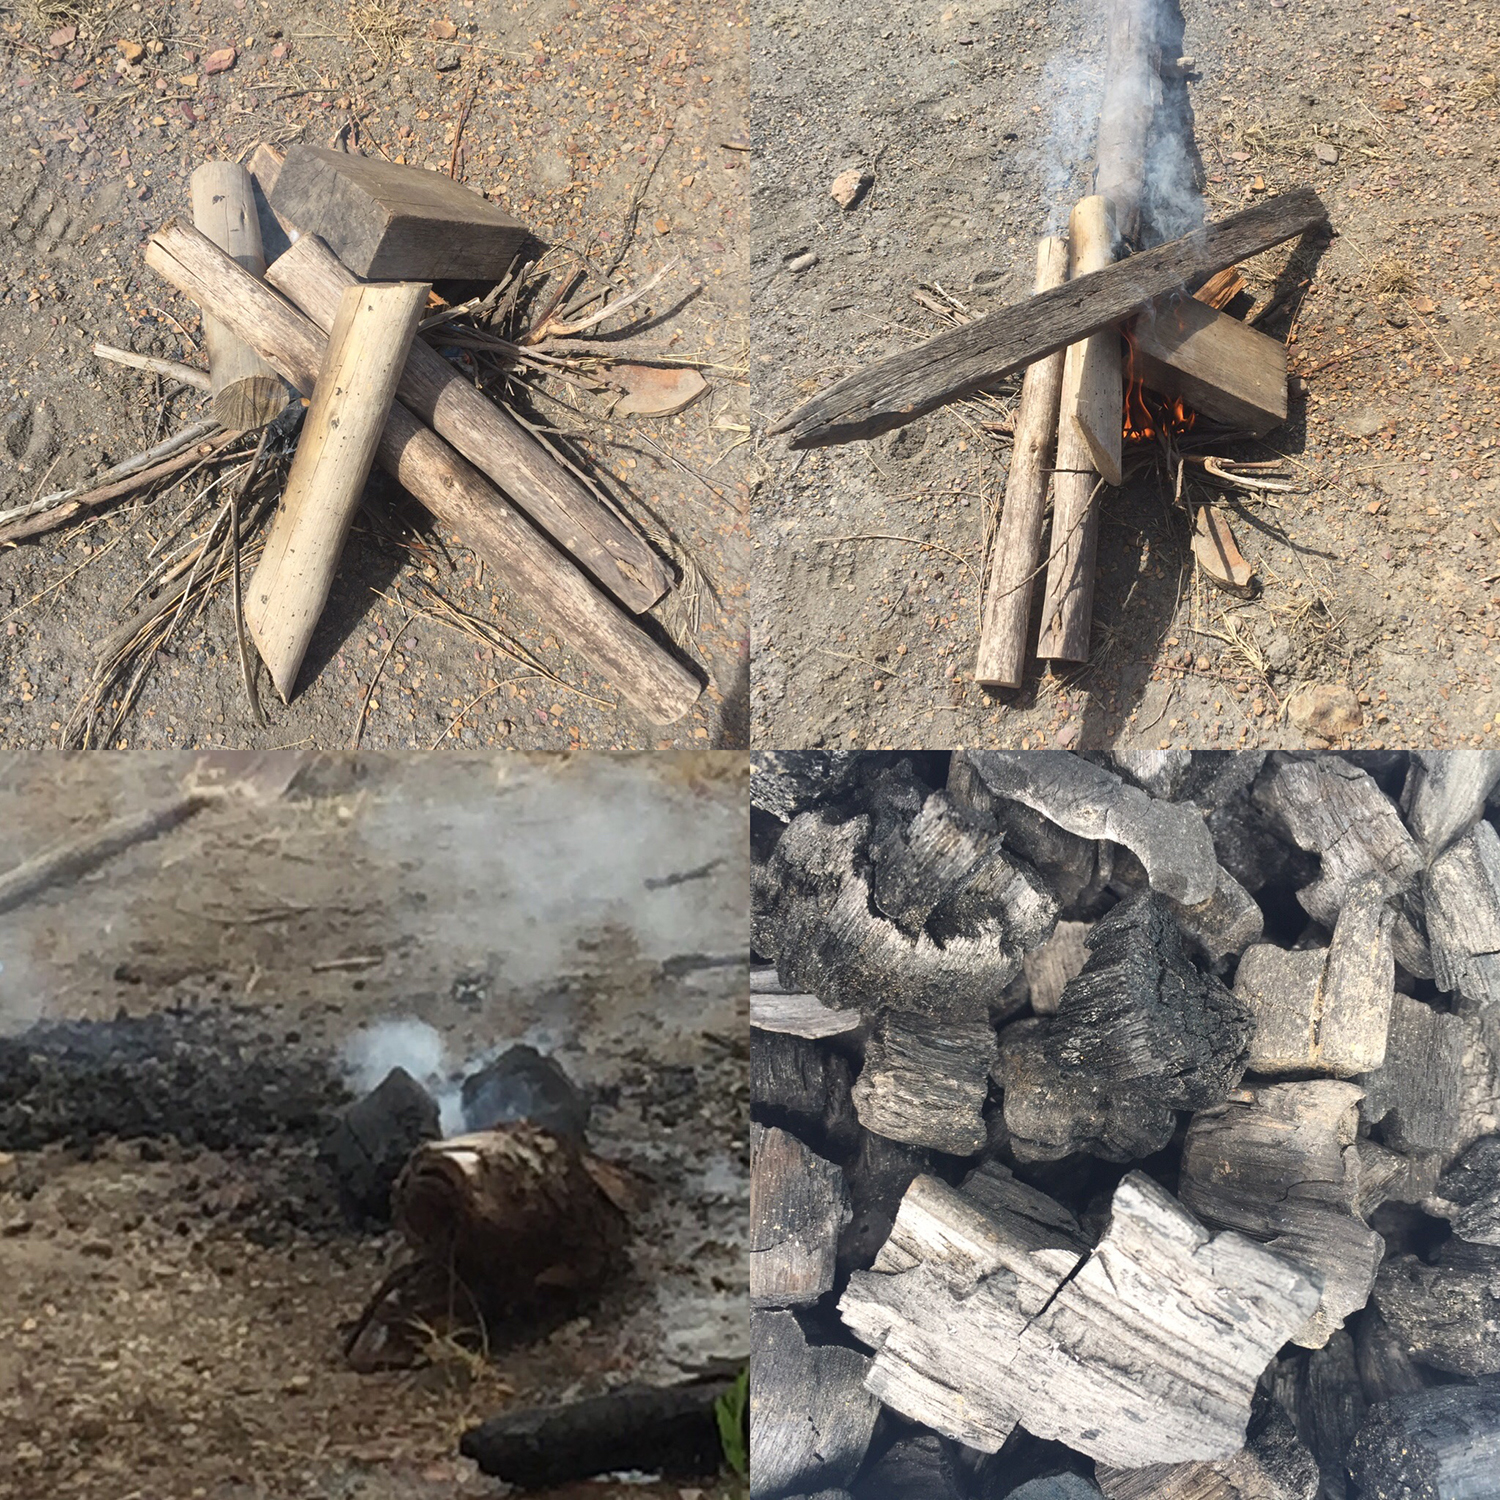 Making charcoal with different woods